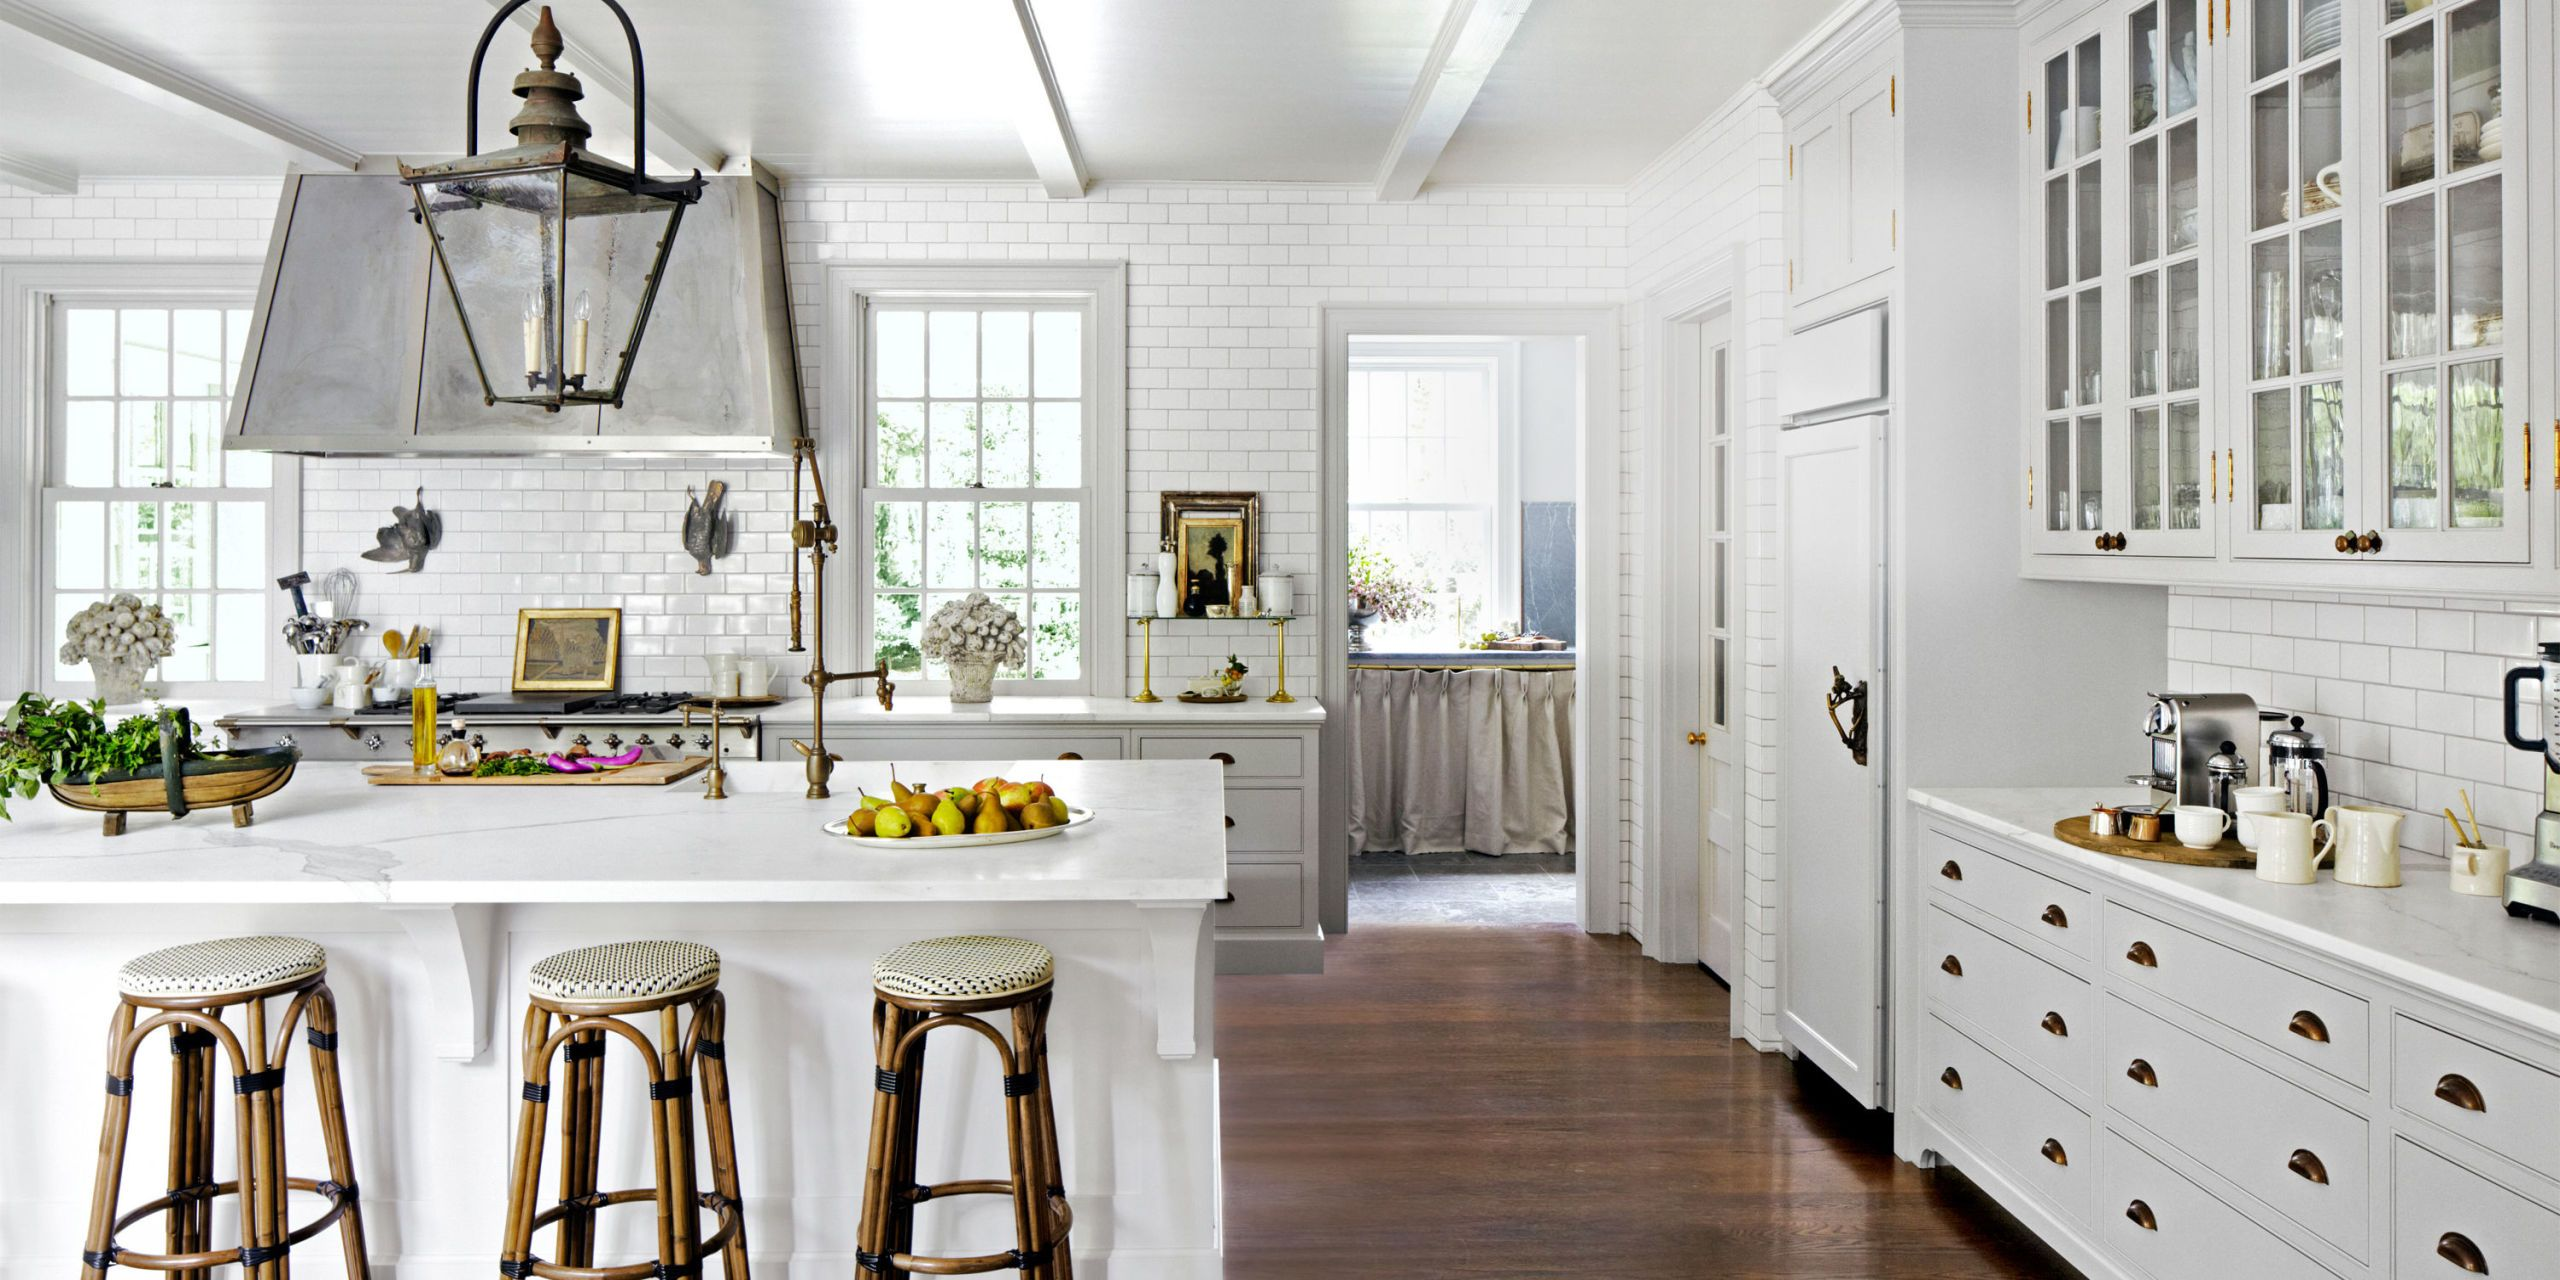 You can\u0027t go wrong with white in the kitchen so sit back and let these fabulous ideas and pictures inspire you to take your kitchen from drab to dazzling. & 24 Best White Kitchens - Pictures of White Kitchen Design Ideas